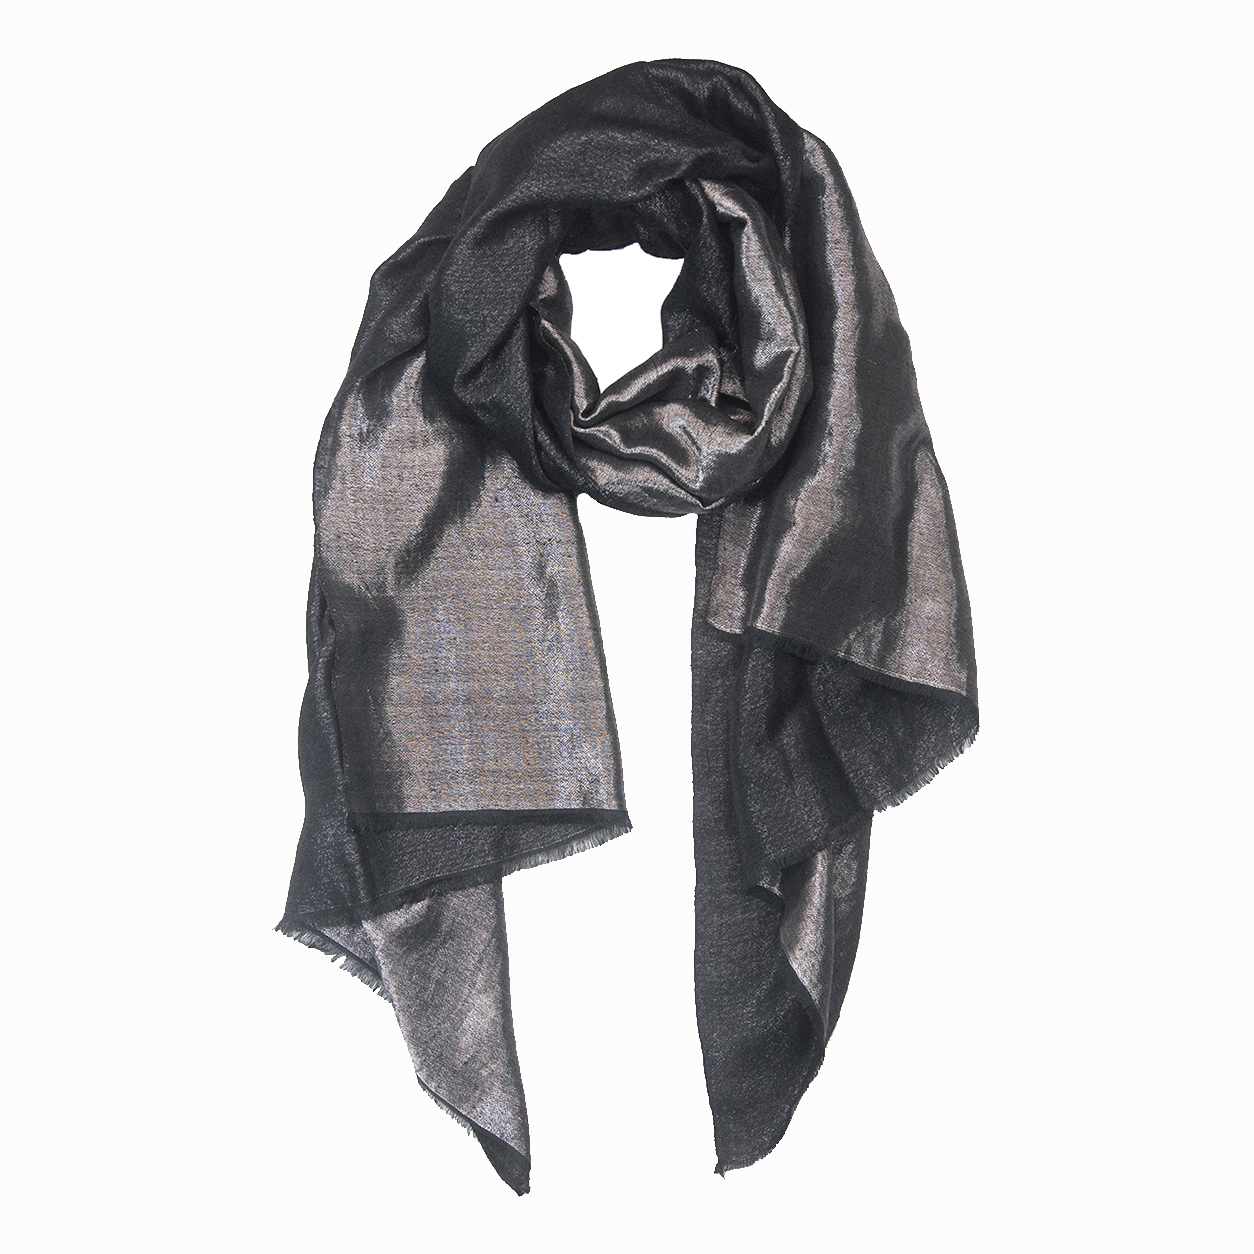 Metallic Reversible Pashmina Stole -  Black and Silver